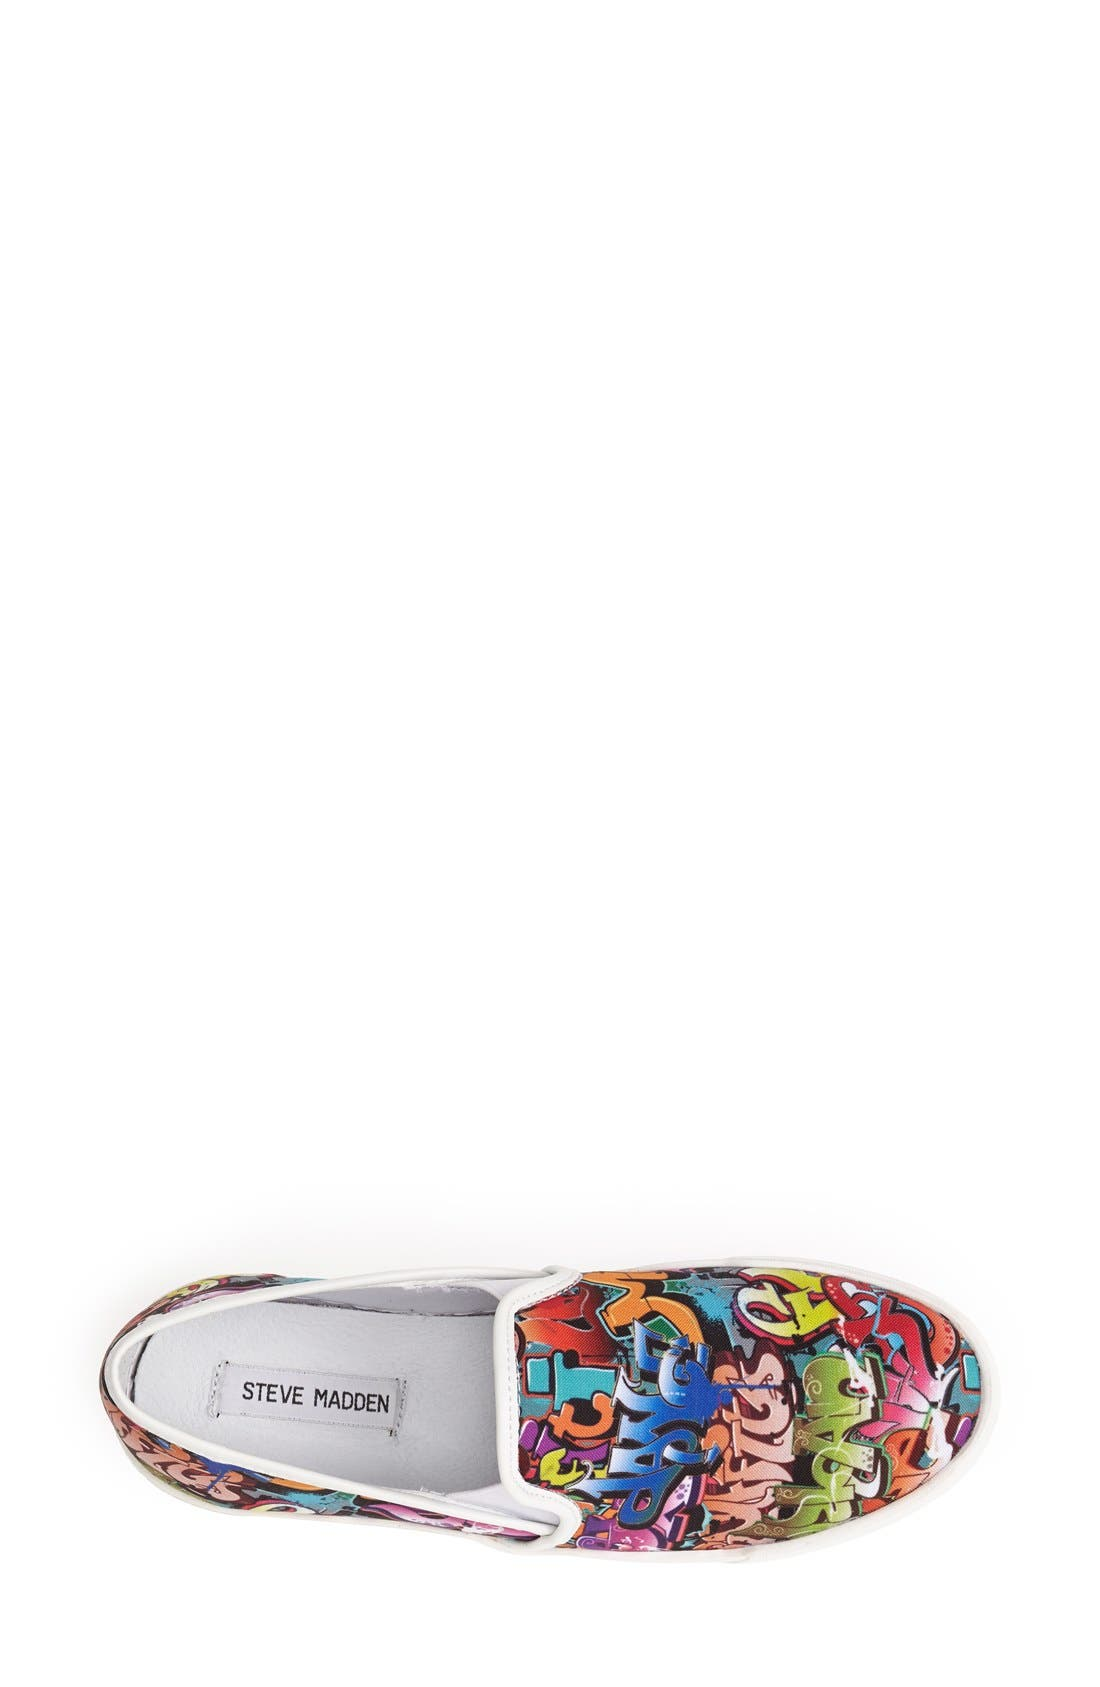 Alternate Image 3  - Steve Madden 'Ecentrcm' Graffiti Print Slip-On Sneaker (Women)